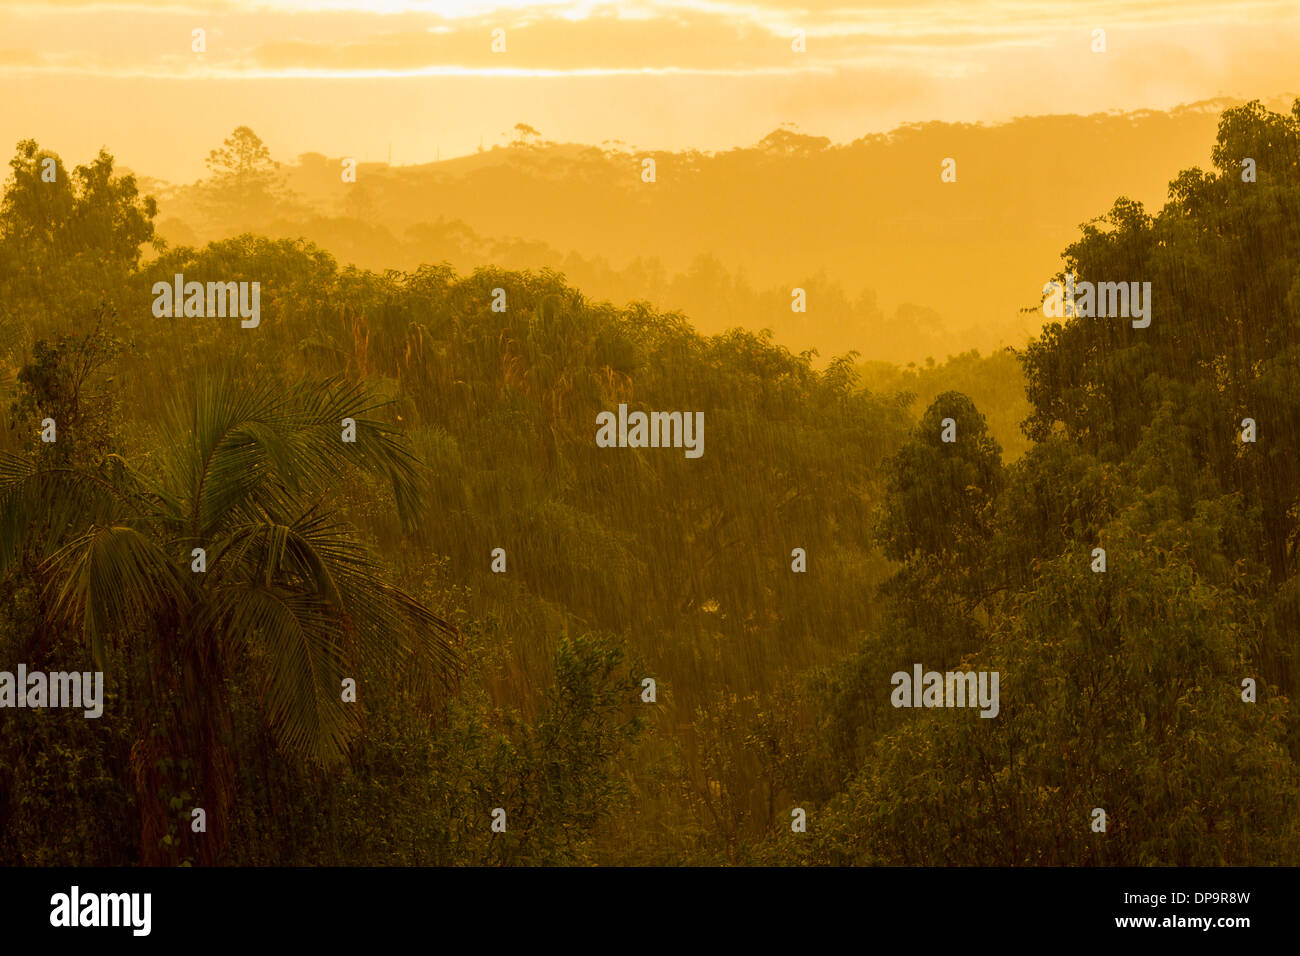 Monsoon rain in a rainforest at sunset - Stock Image